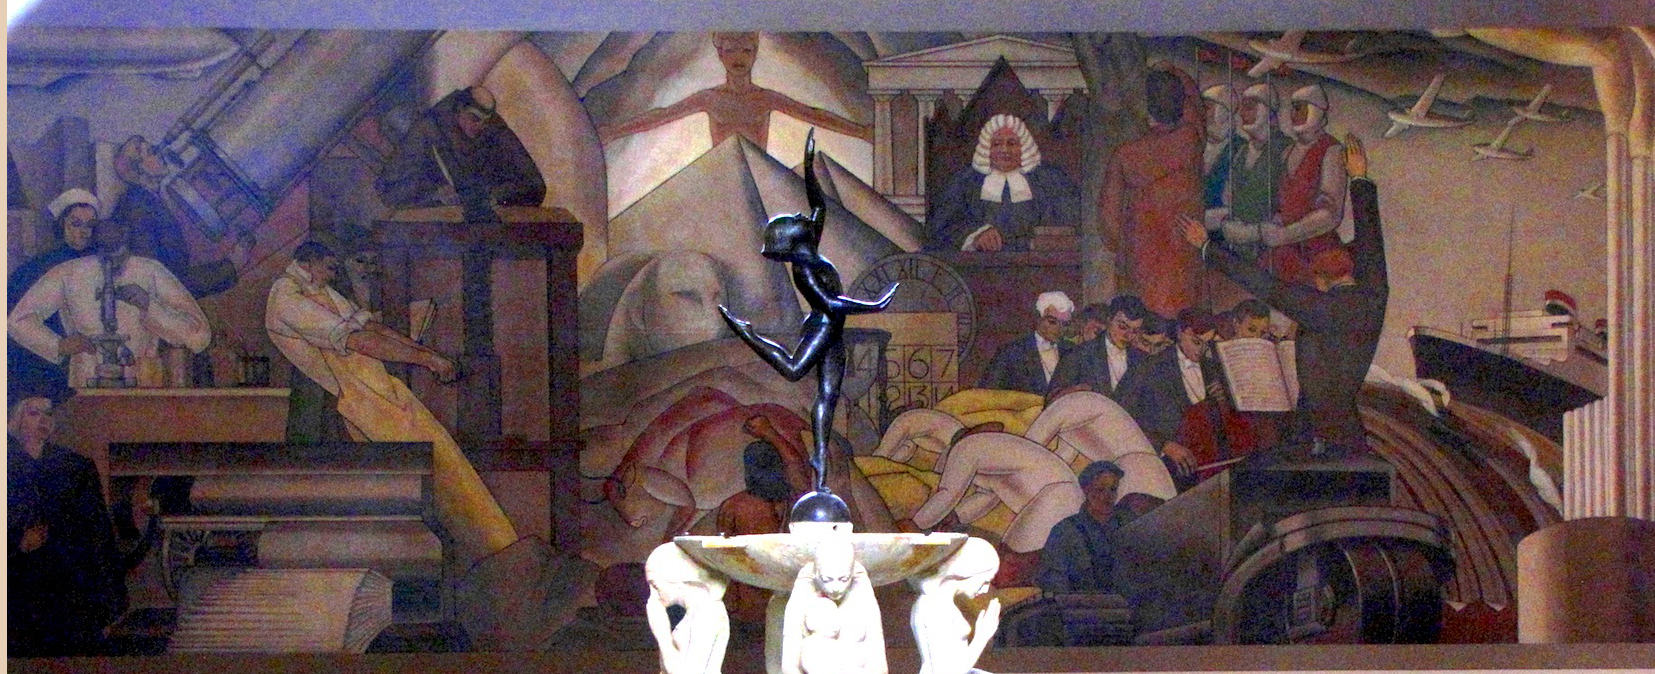 The Progress of Man, 1935, Baranceanu, mural